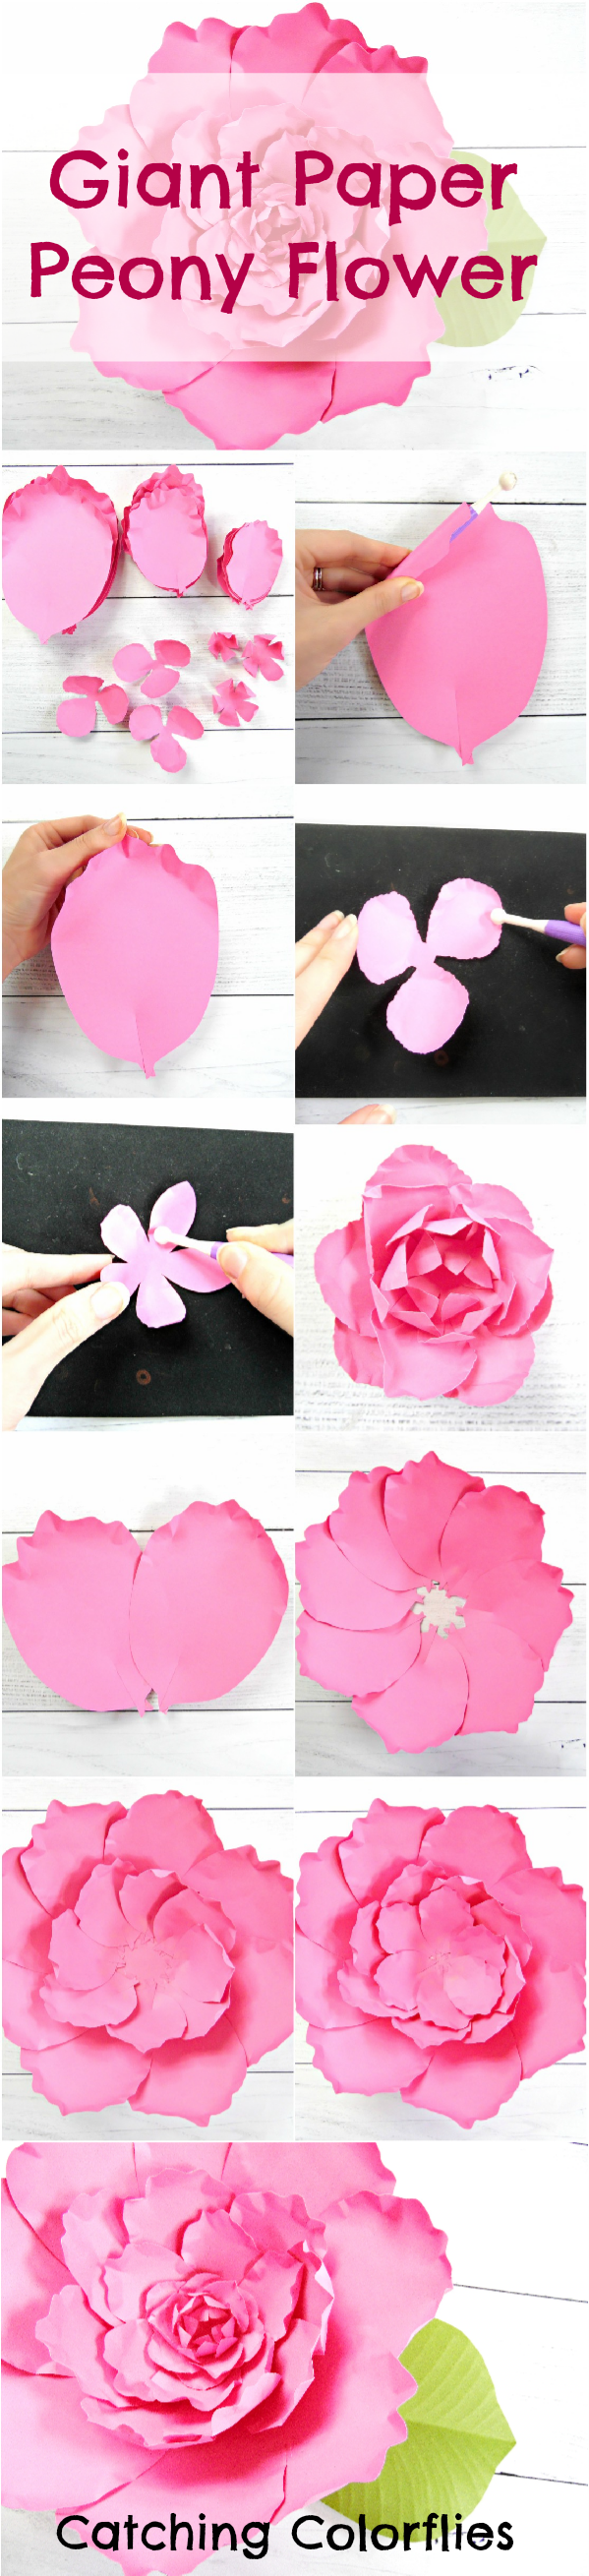 Giant Peony Paper Flower Tutorial - Catching Colorflies